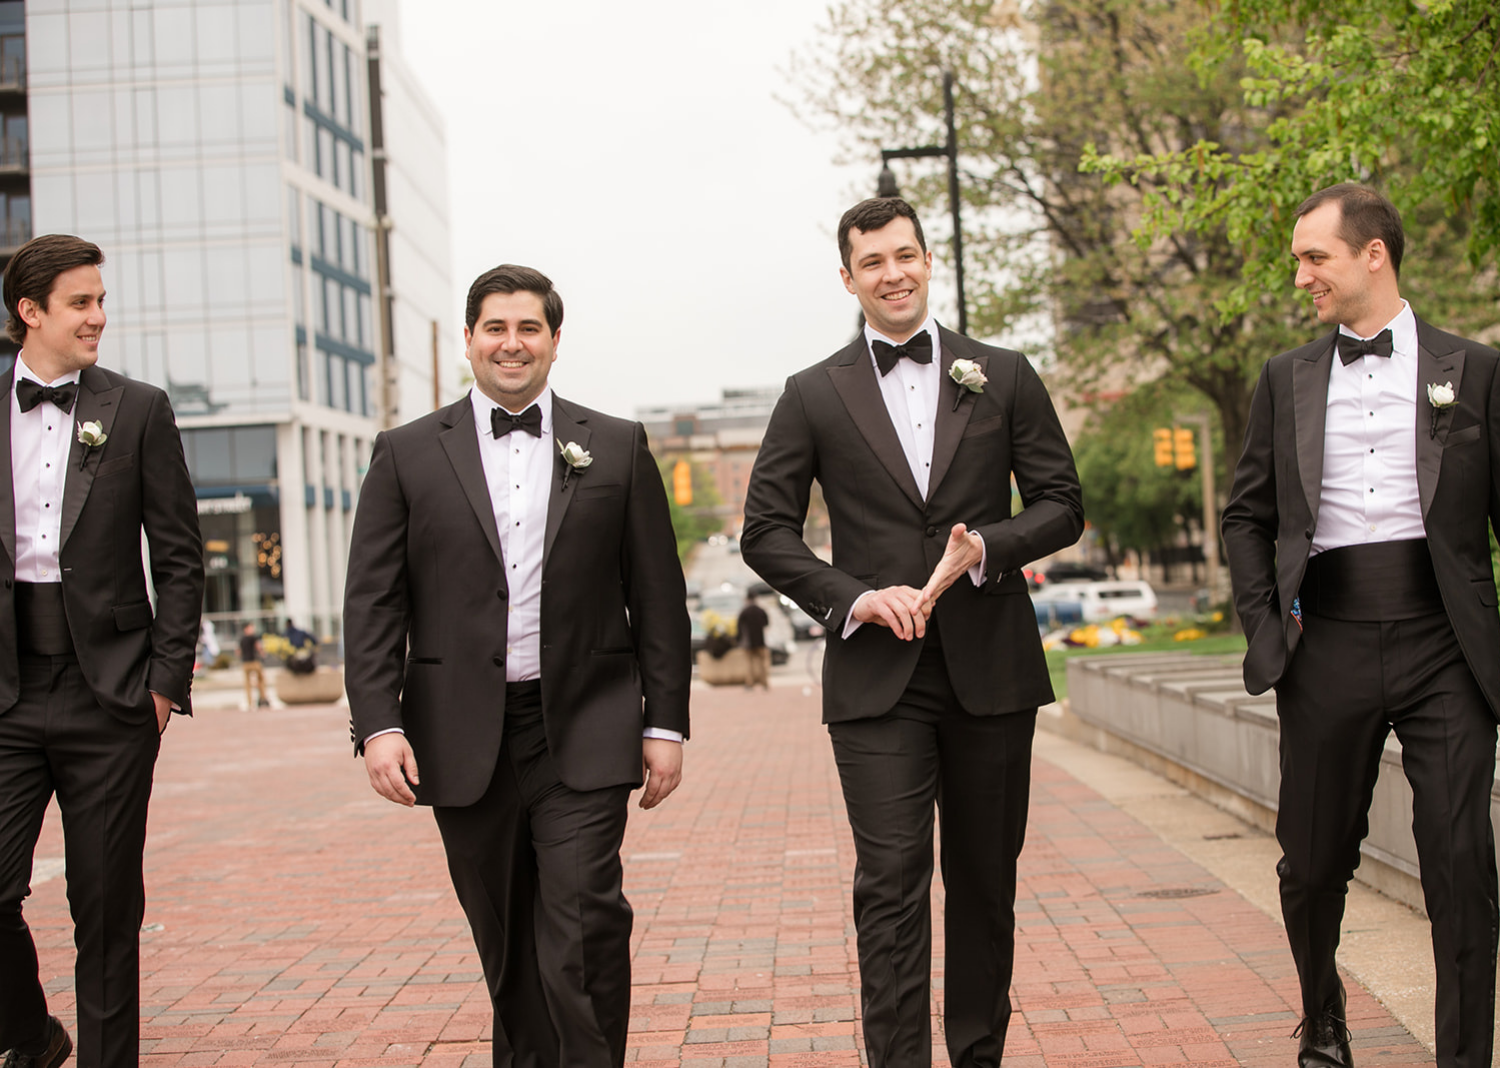 groom taking a stroll with his groomsmen